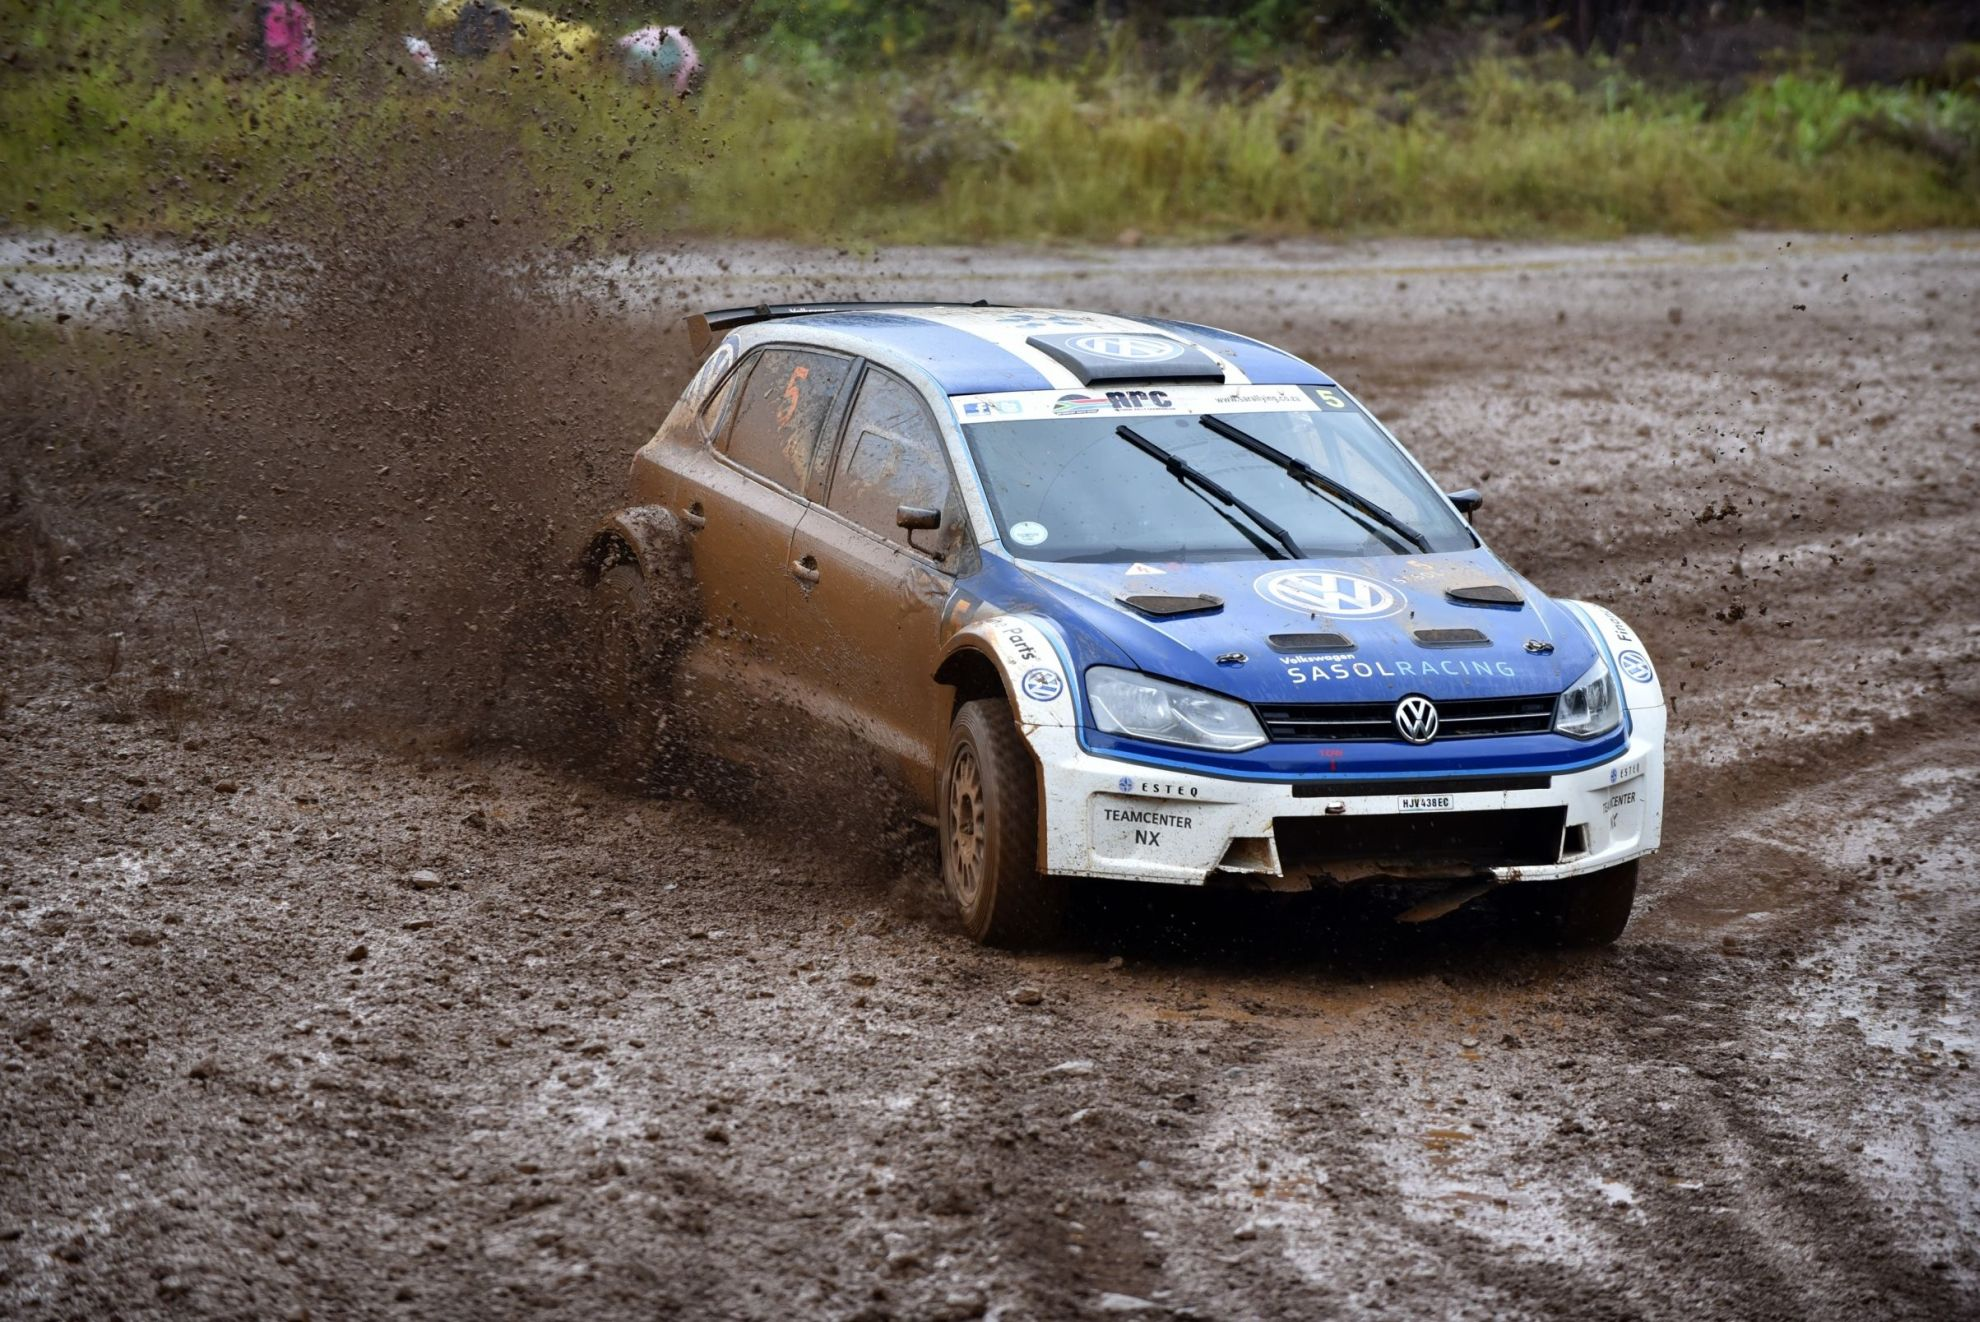 Determined-Volkswagen-Sasolracing-Team-Ready-for-Secunda-Motor-Rally